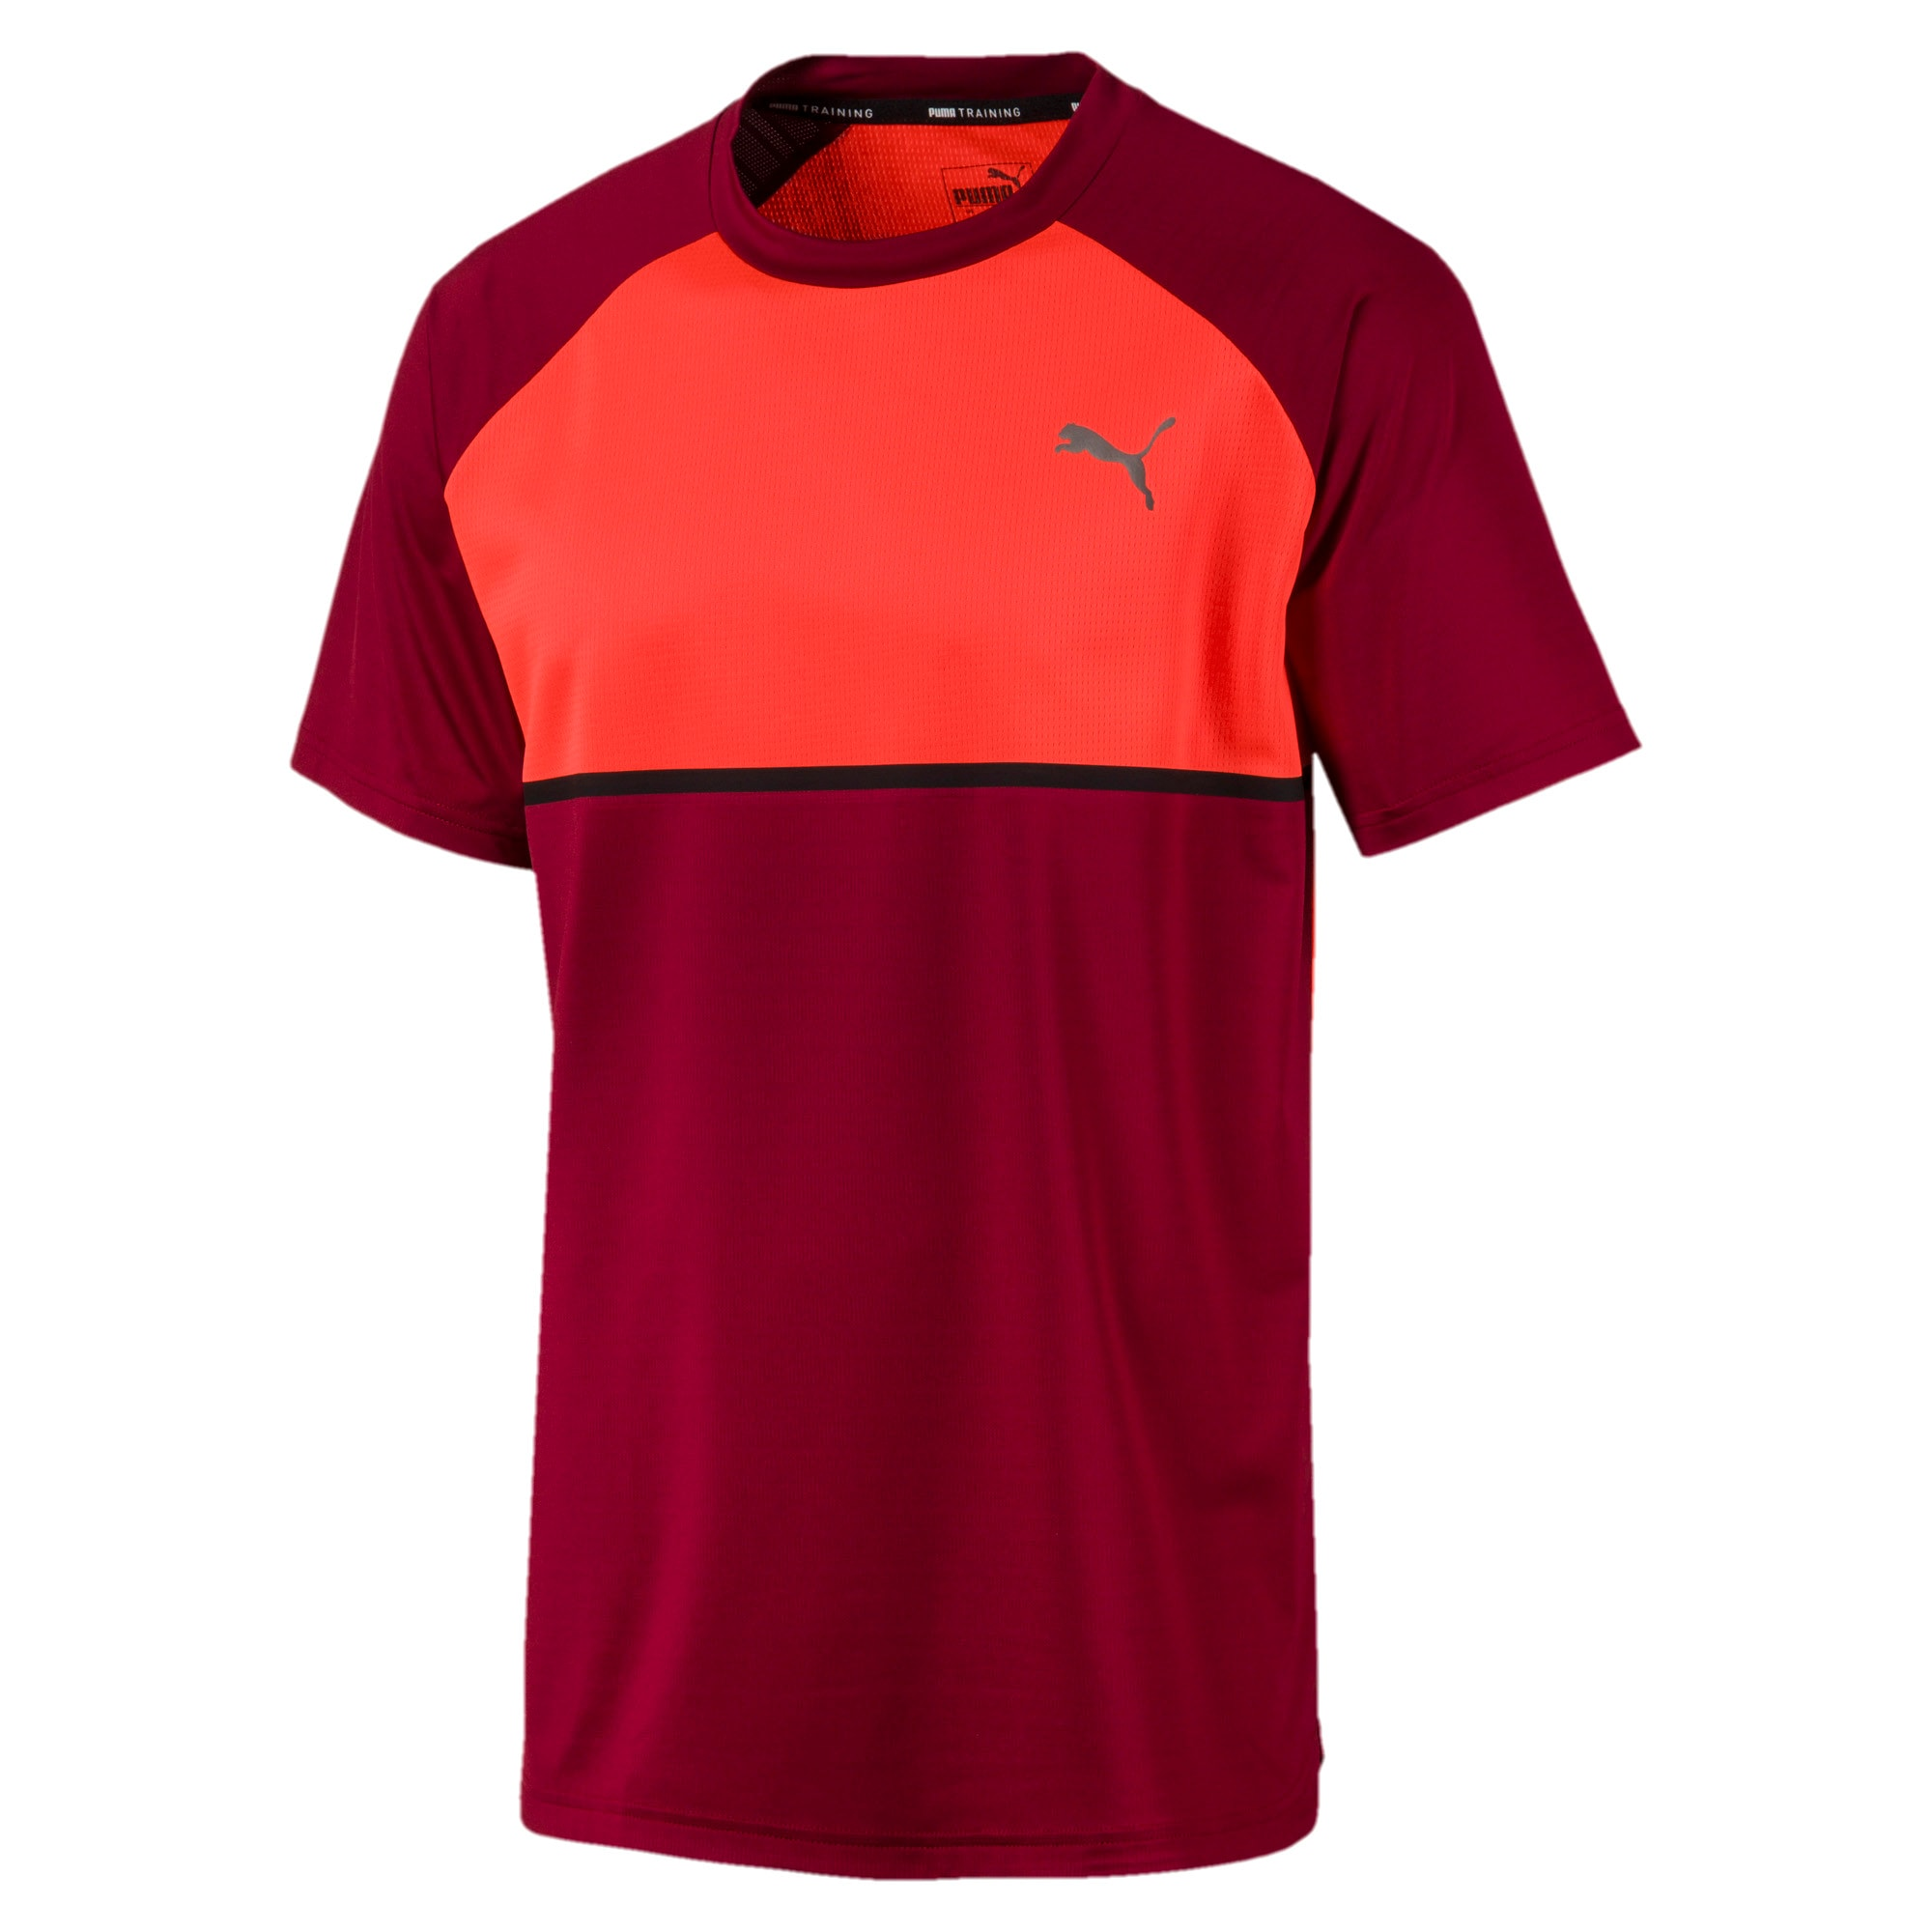 Thumbnail 4 of Power BND Men's Tee, Rhubarb-Nrgy Red, medium